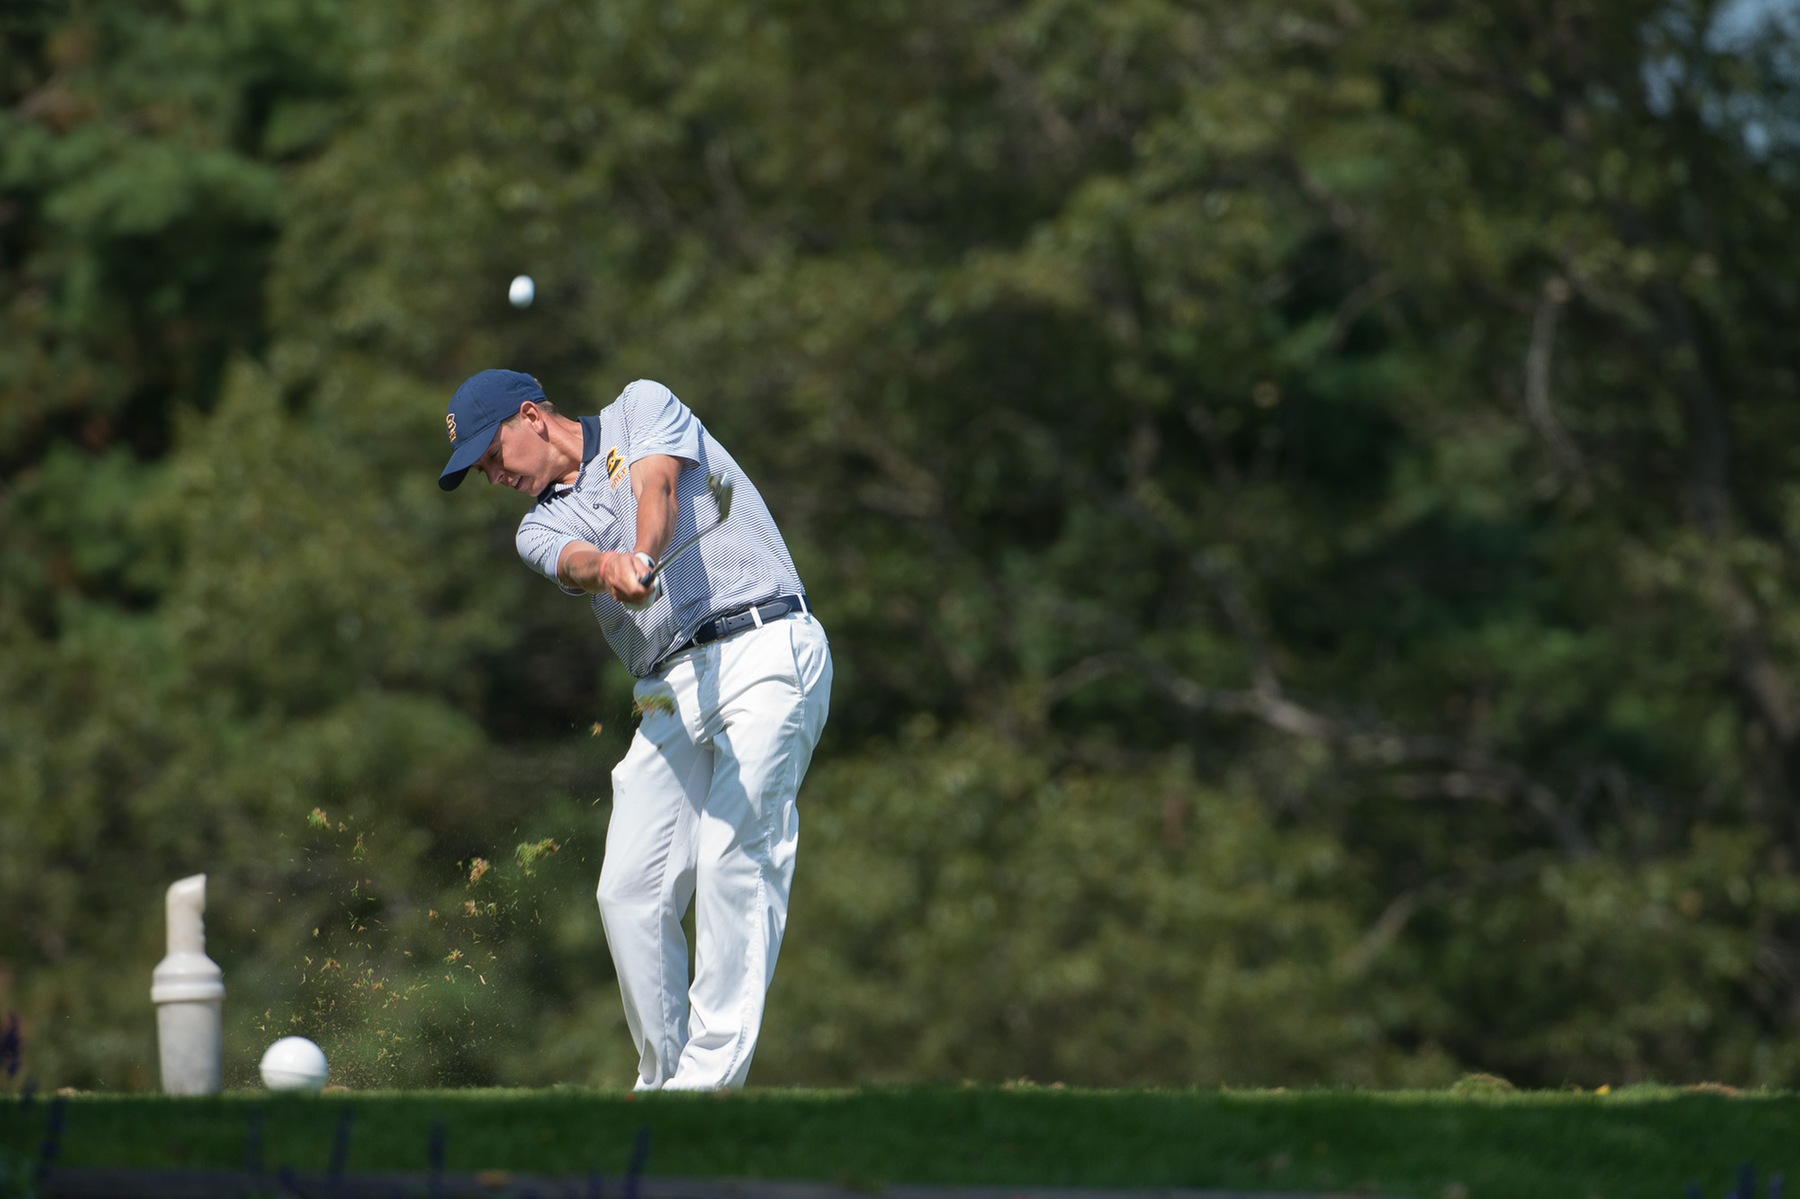 Men's Golf takes 2nd while Rogan earns medalist honors at Bobby Krig Invite